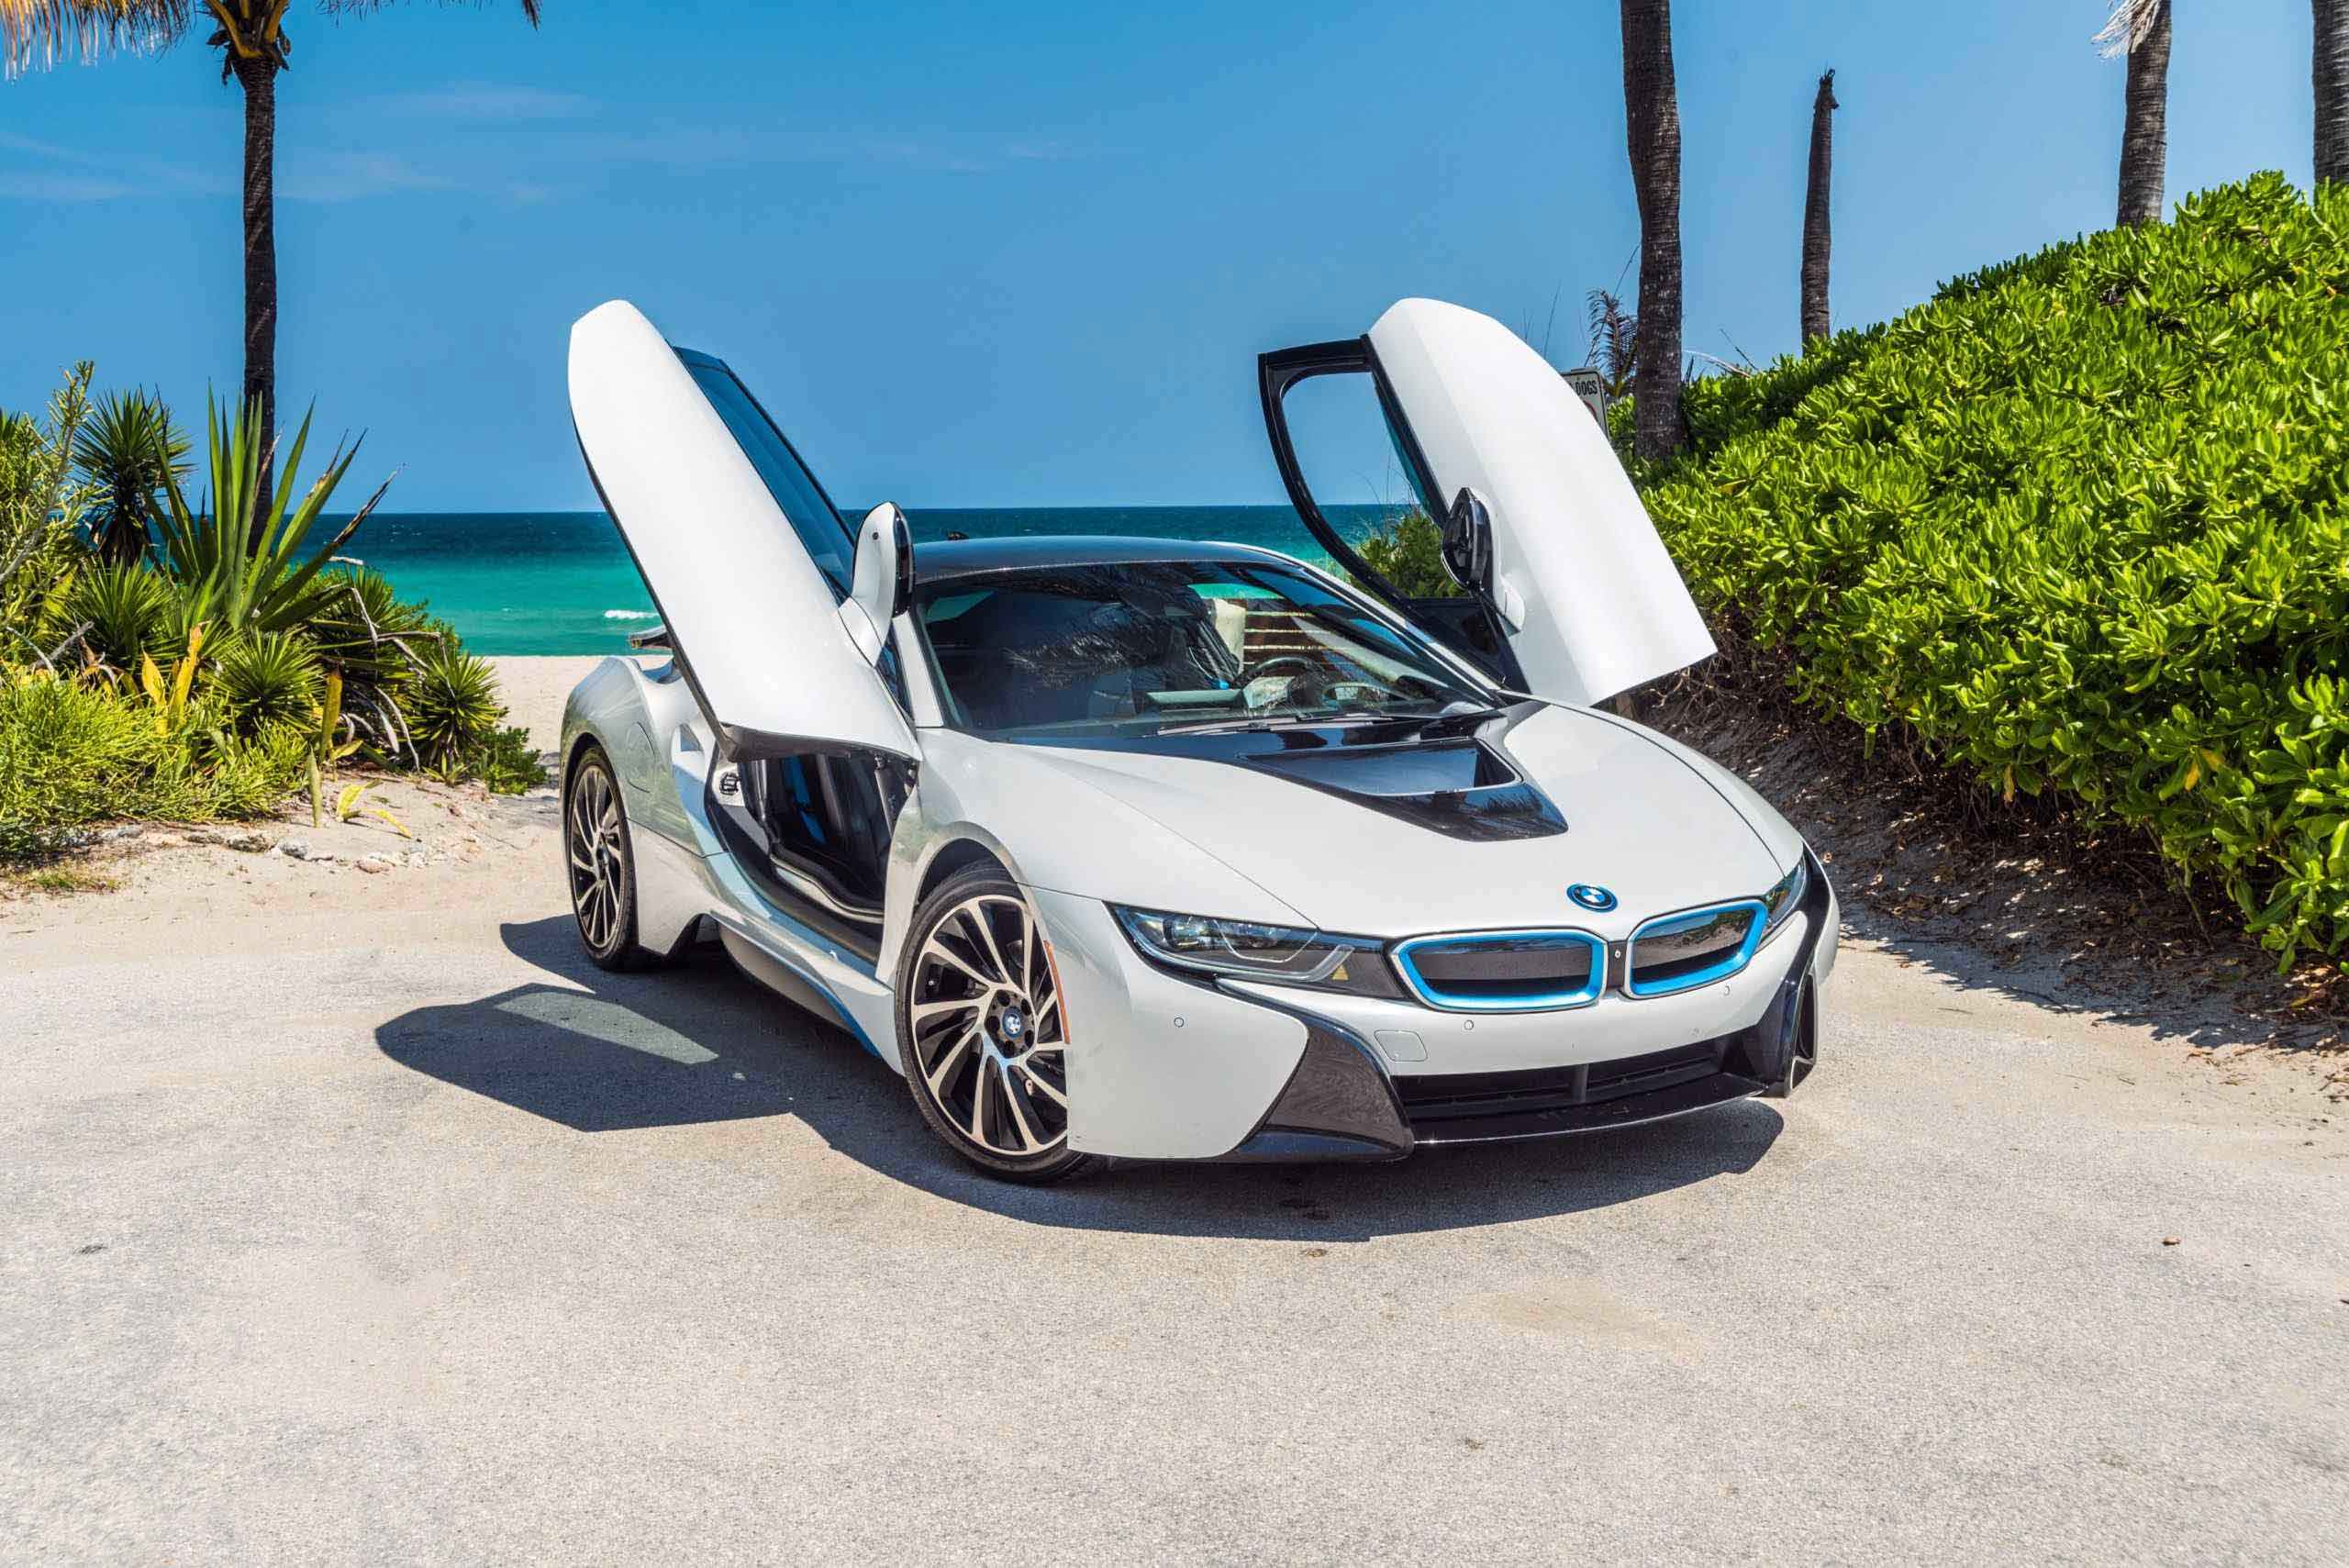 Car Sharing in Miami with SHAiR